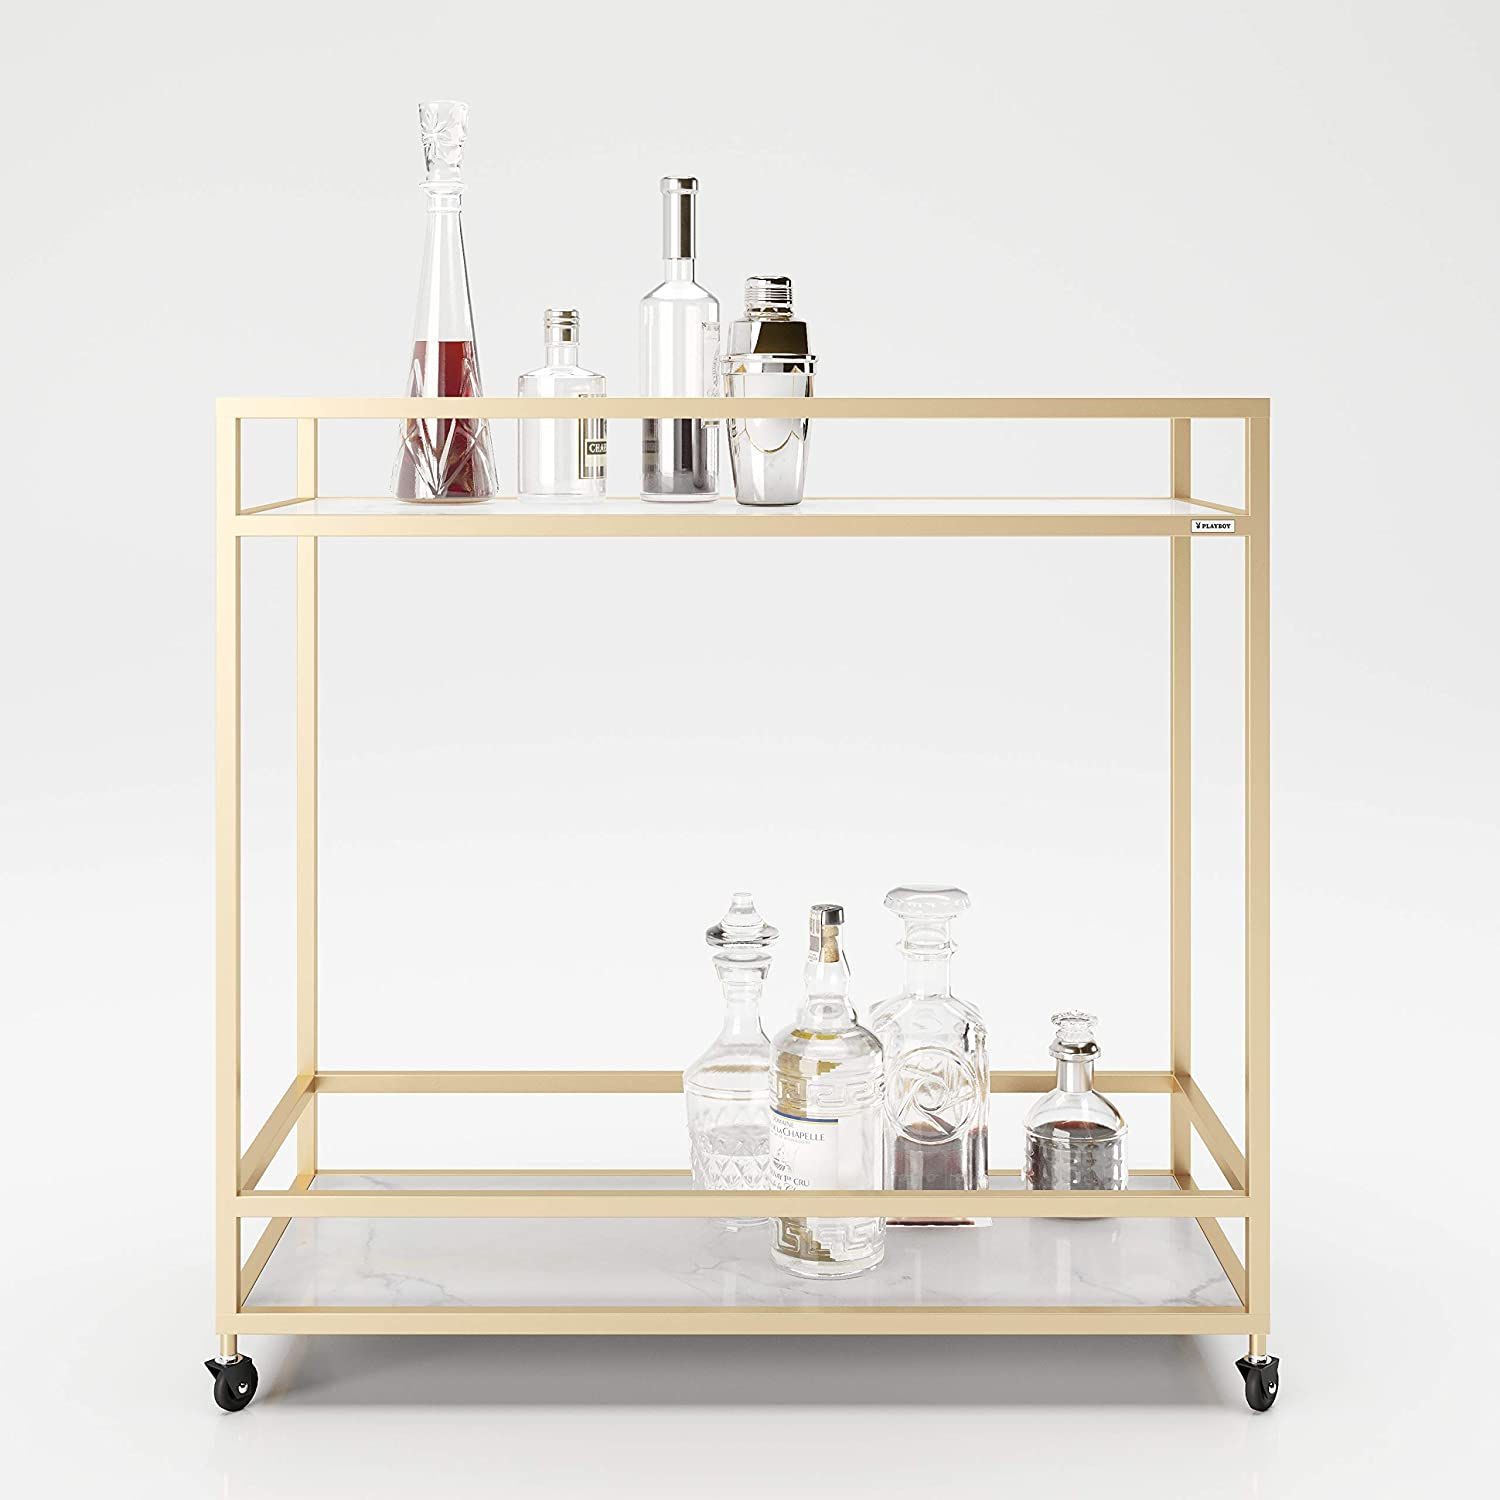 90 x 87 x 40 cm PLAYBOY 634201MB Trolley in Gold//Mamoroptik with 2 Shelves Marble